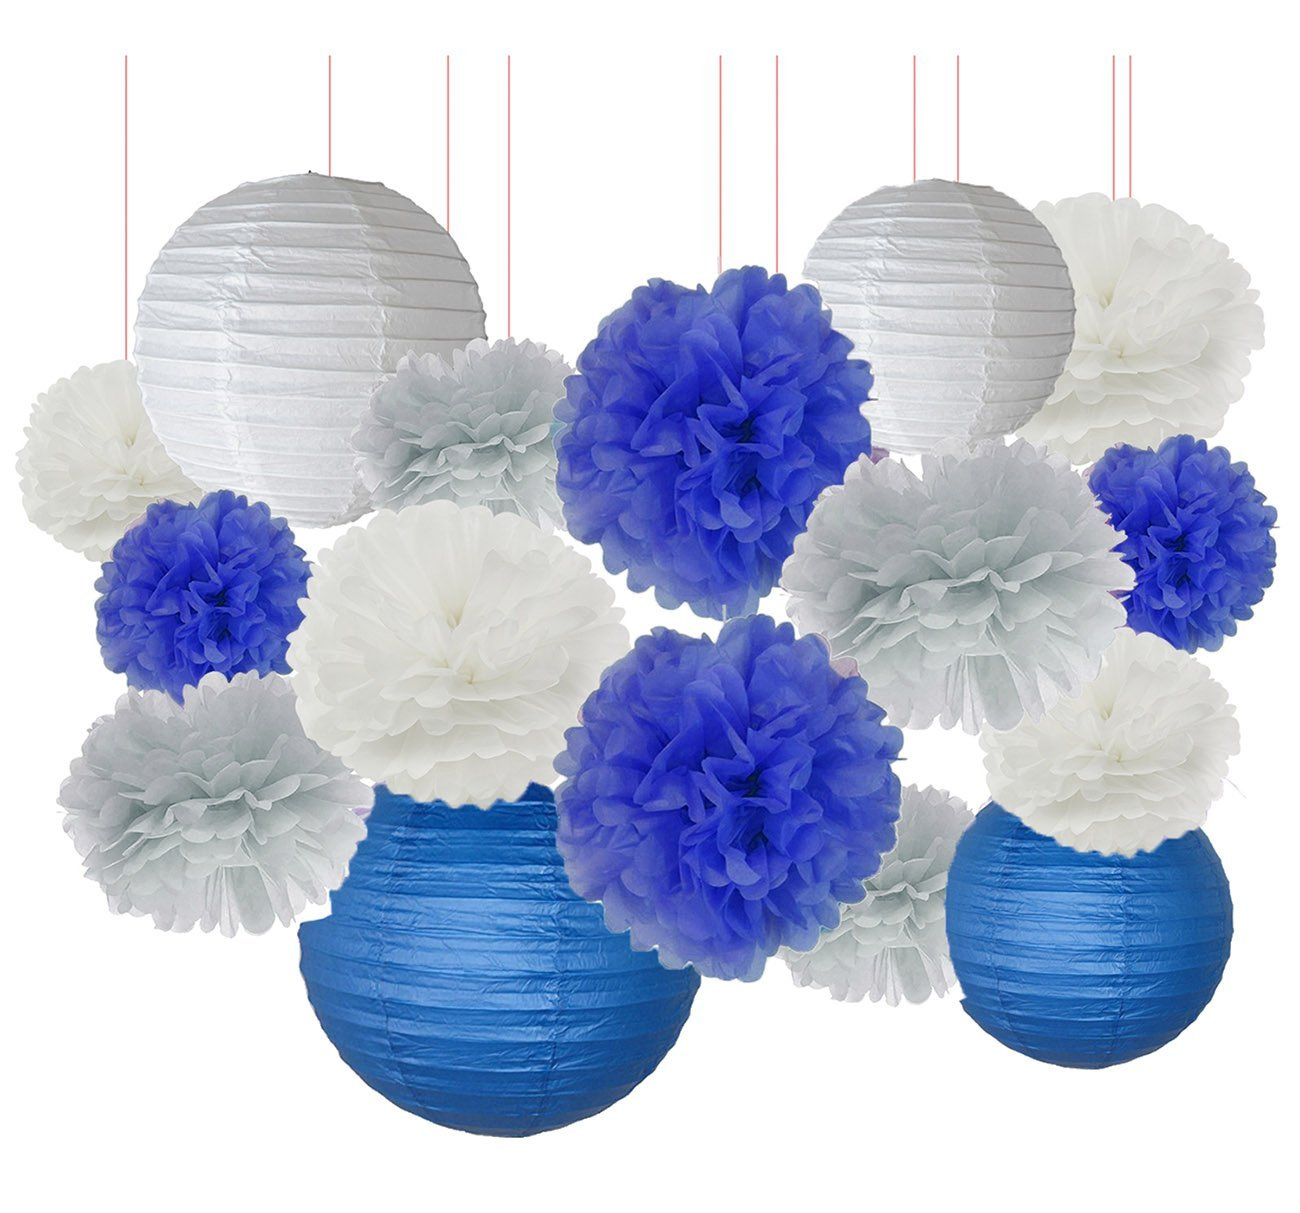 Furuix Bridal Shower Decorations 16 pcs White Navy Blue Grey 10inch 8inch Tissue Paper Pom Pom Paper Lanterns Mixed Package for Blue Themed Party Baby Shower Decoration (White Navy Blue)